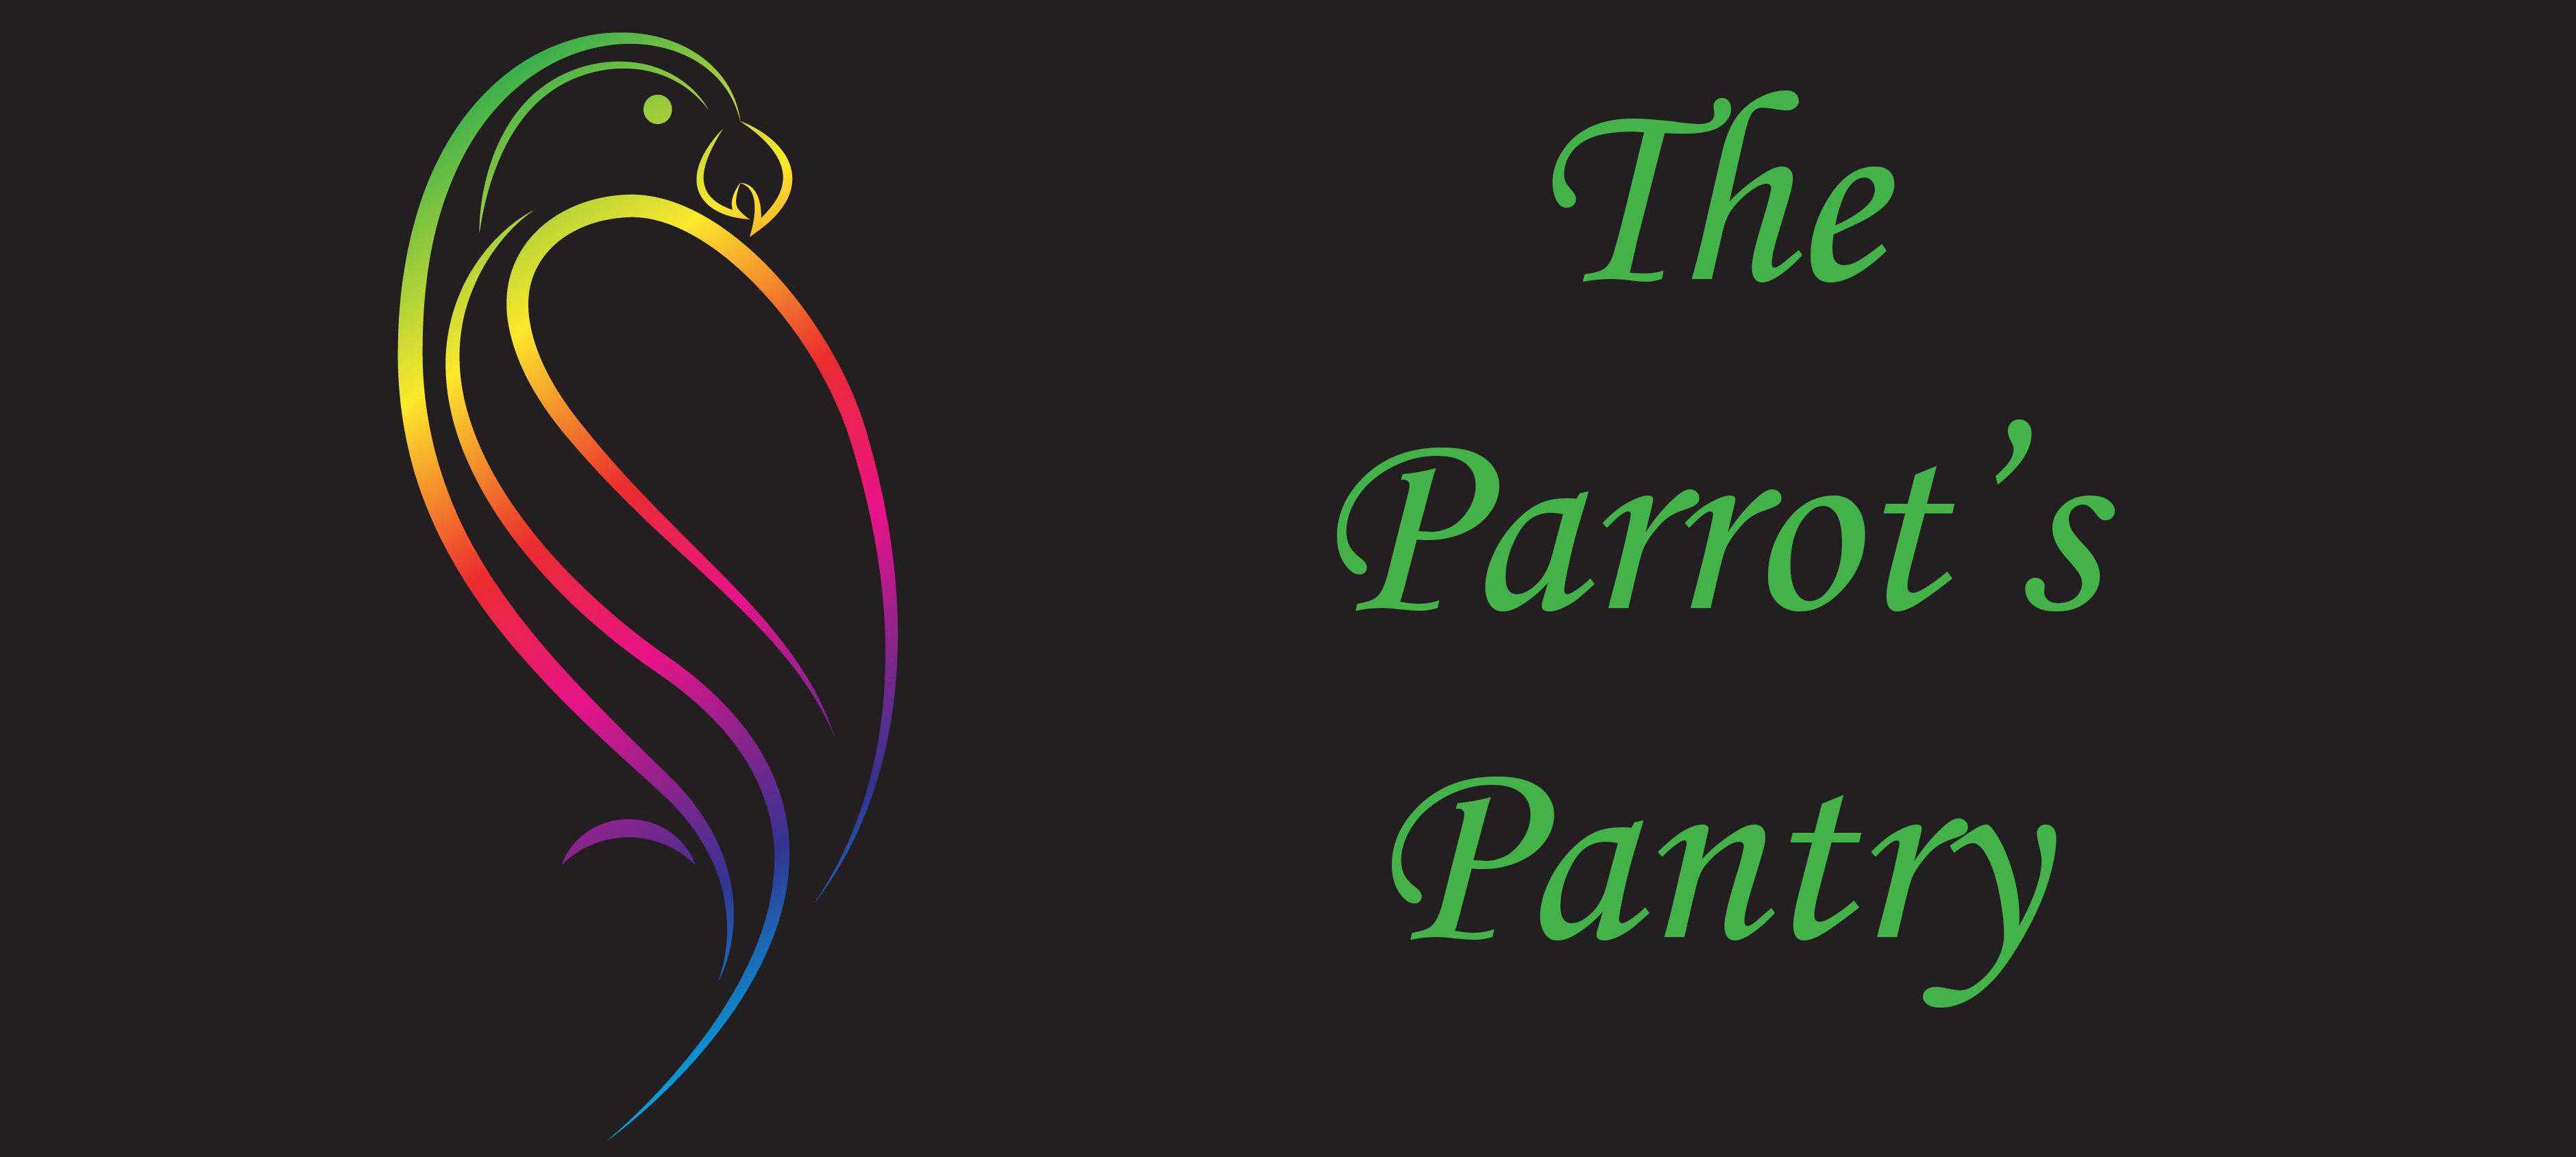 The Parrot's Pantry